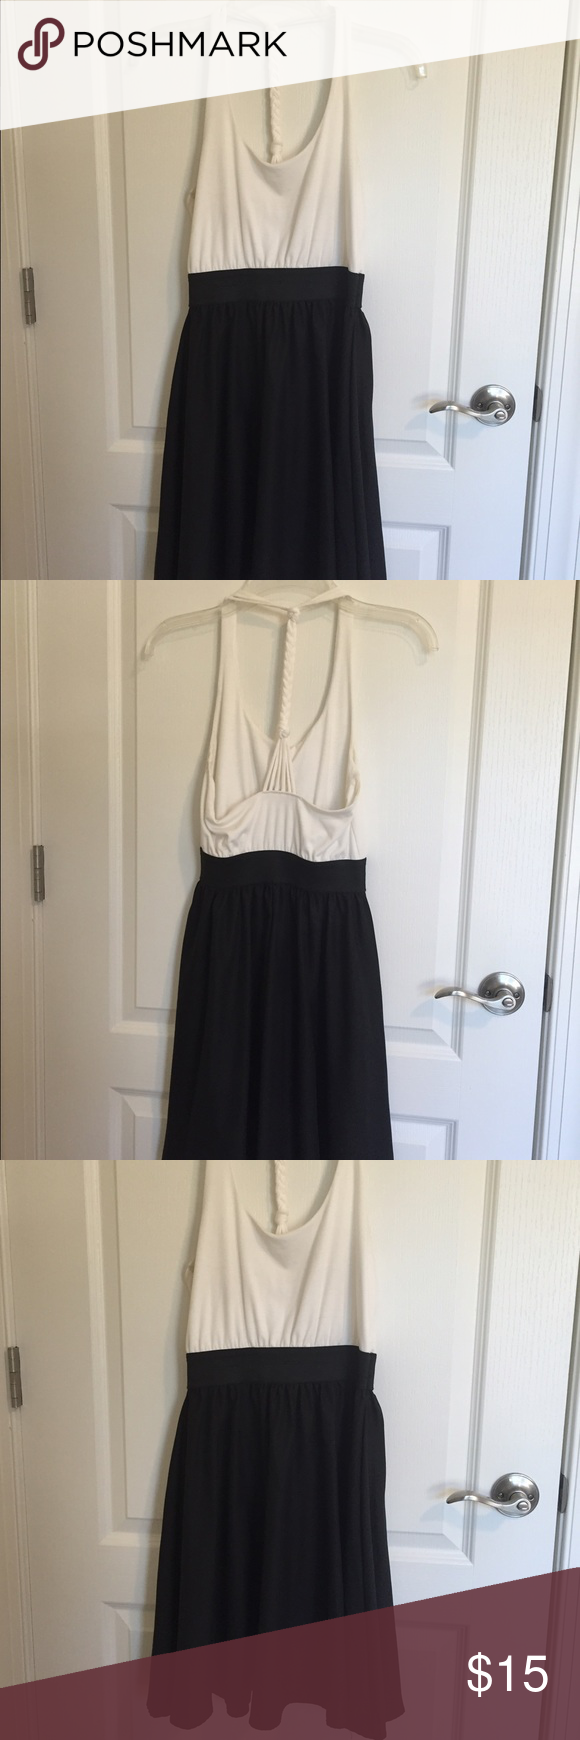 Black white colorblock mixed media racerback dress Adorable dress for summer! Gently used in good condition. Elastic waistband makes it so flattering. Dresses